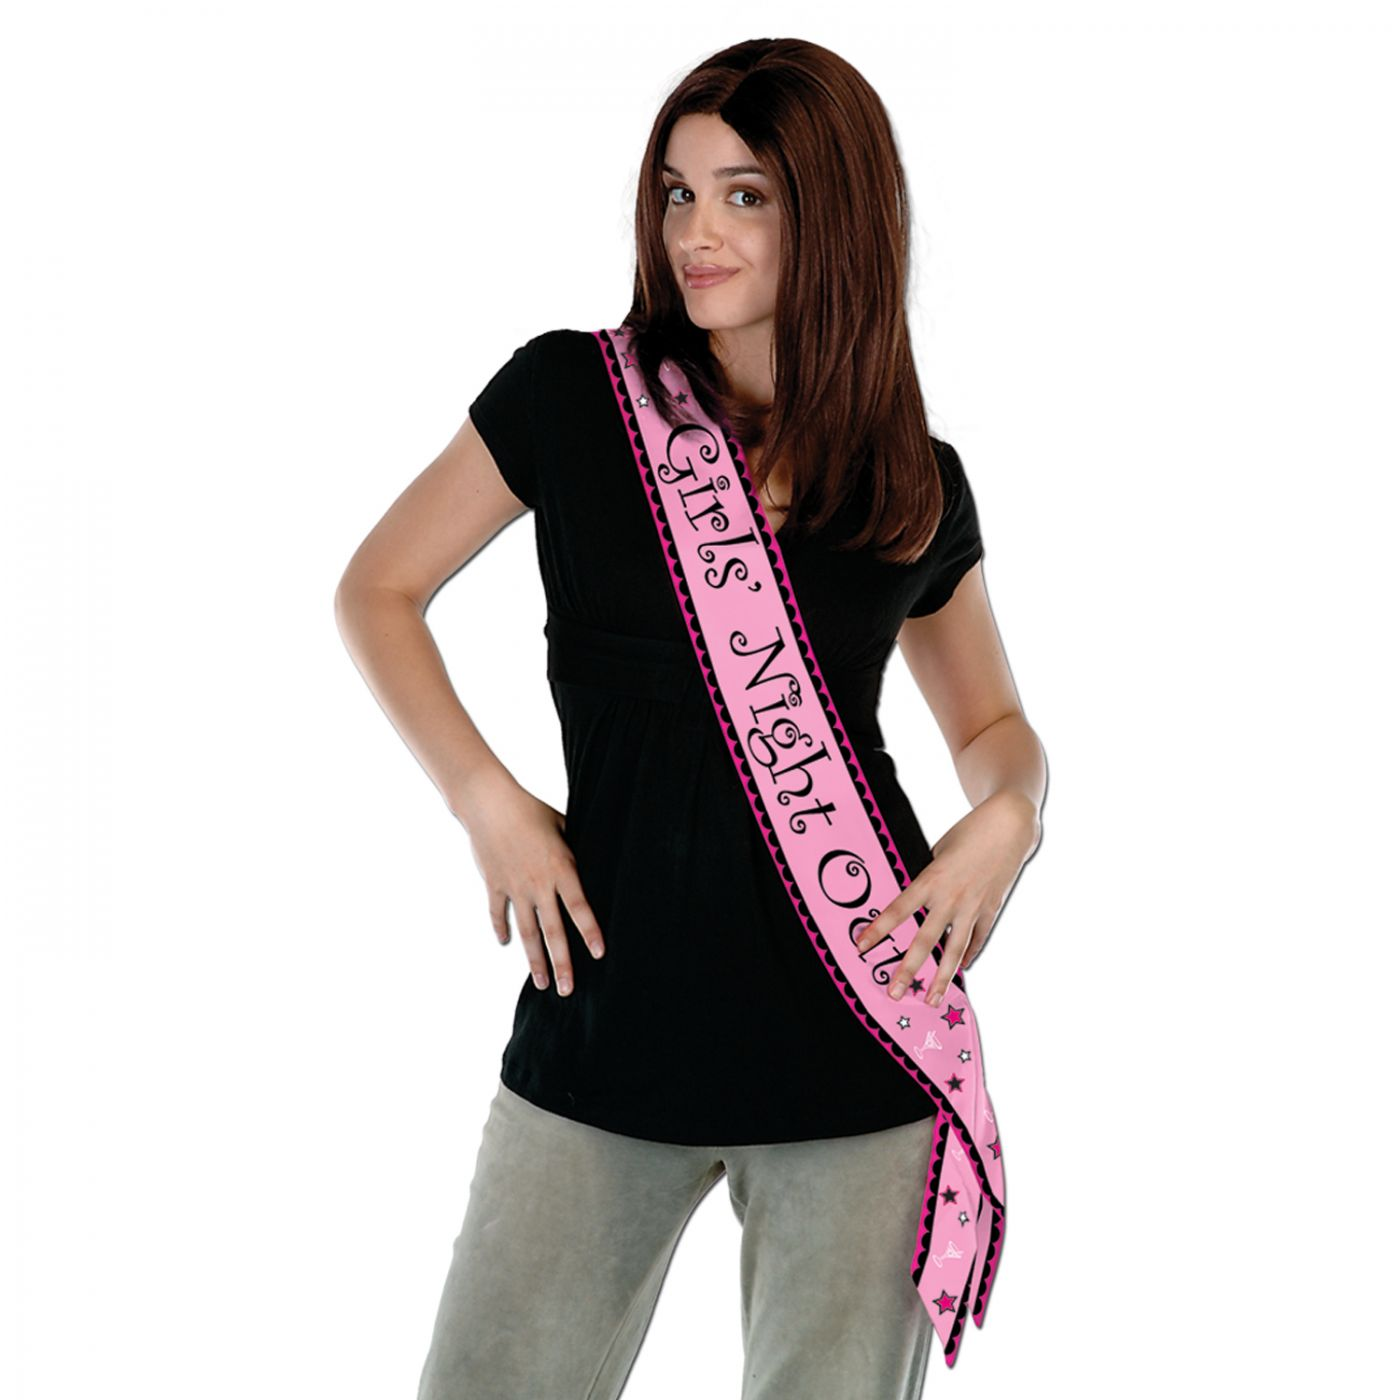 Girls' Night Out Satin Sash (6) image